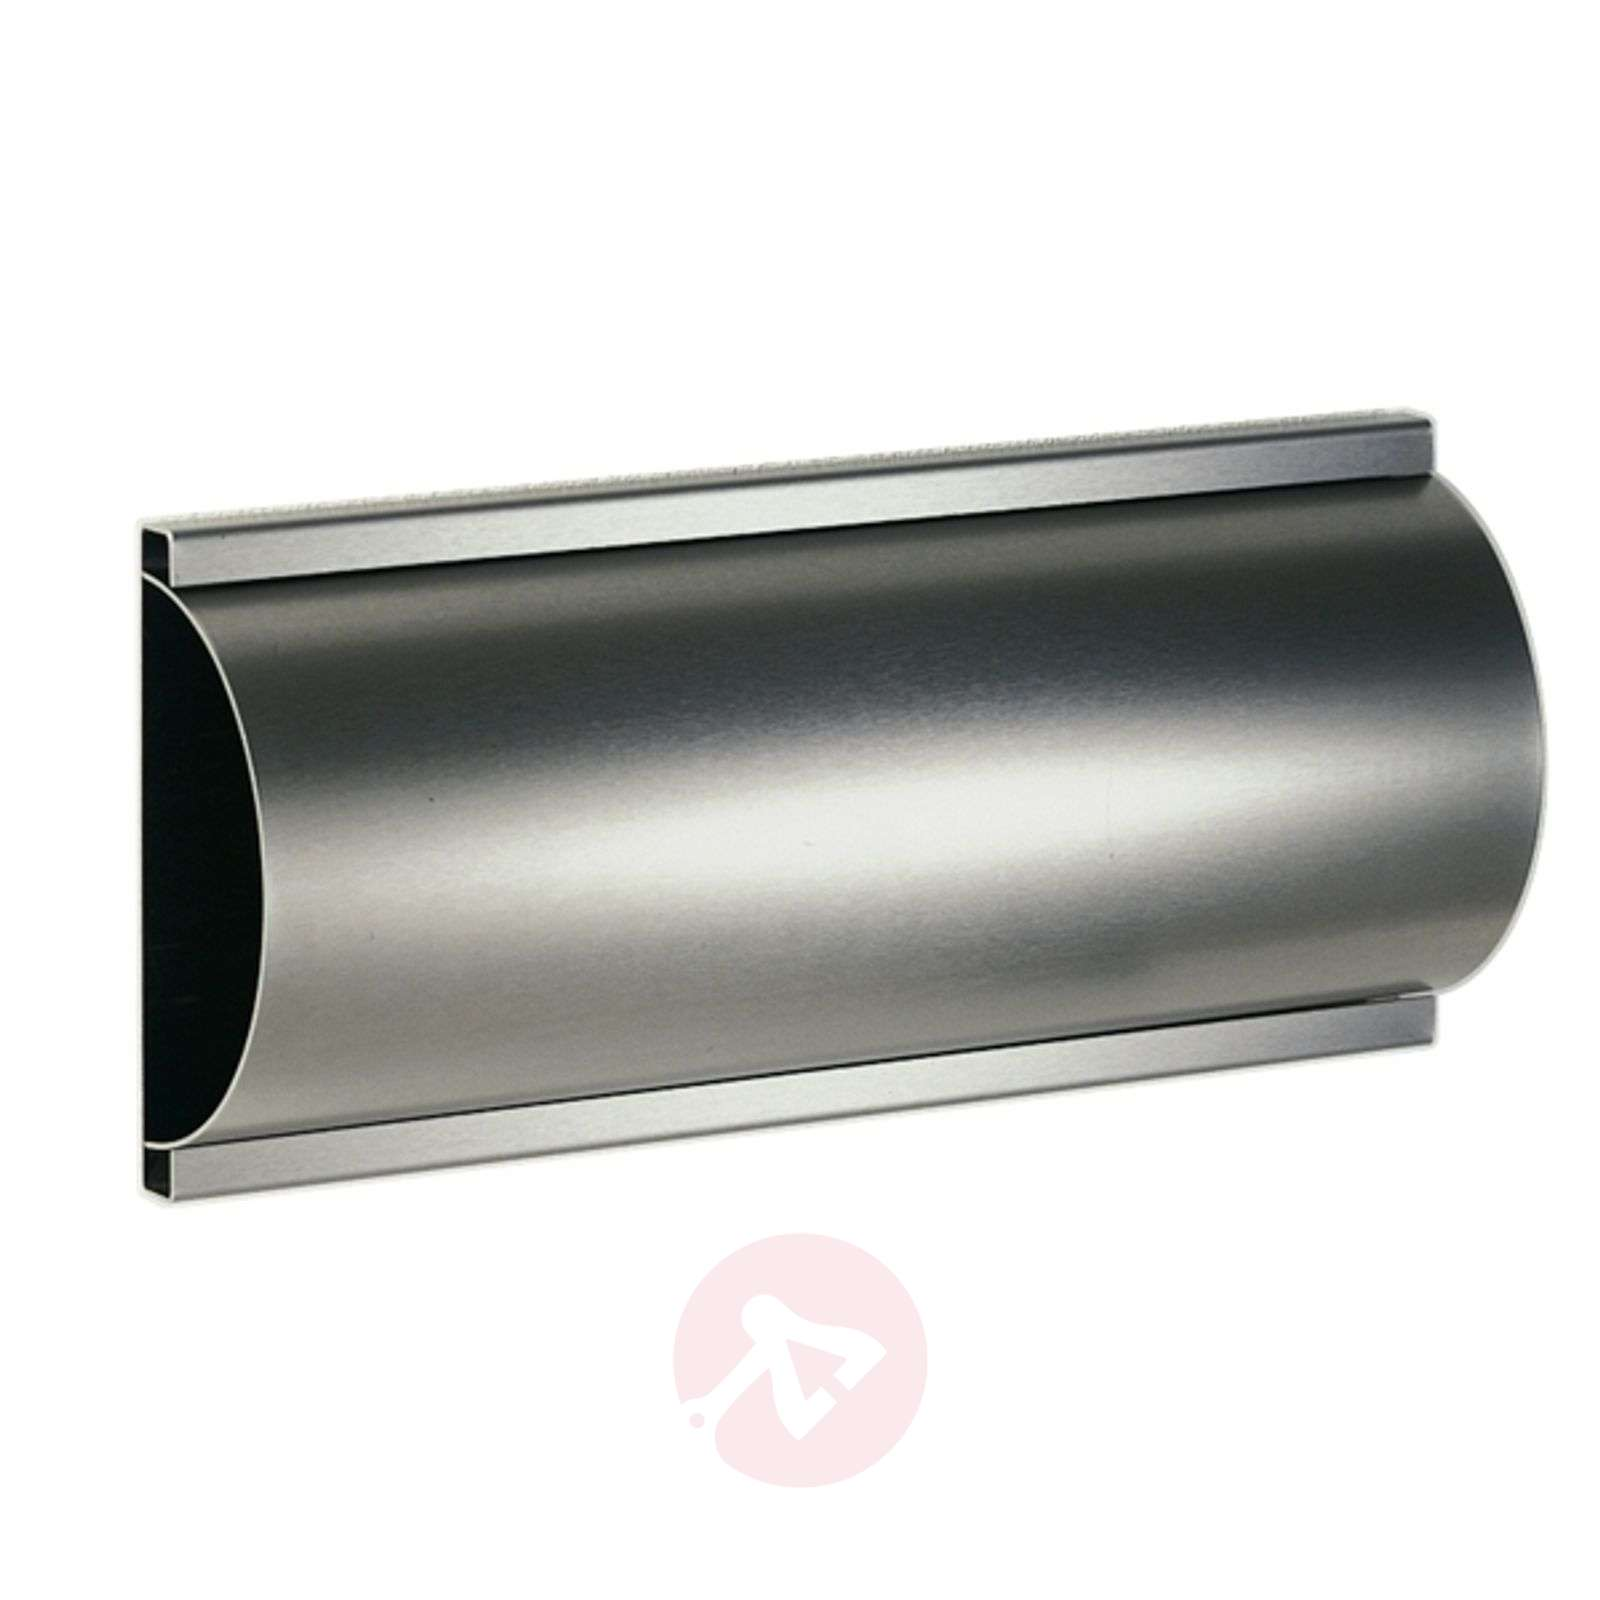 High-quality newspaper holder 787, stainless steel-4001787-01